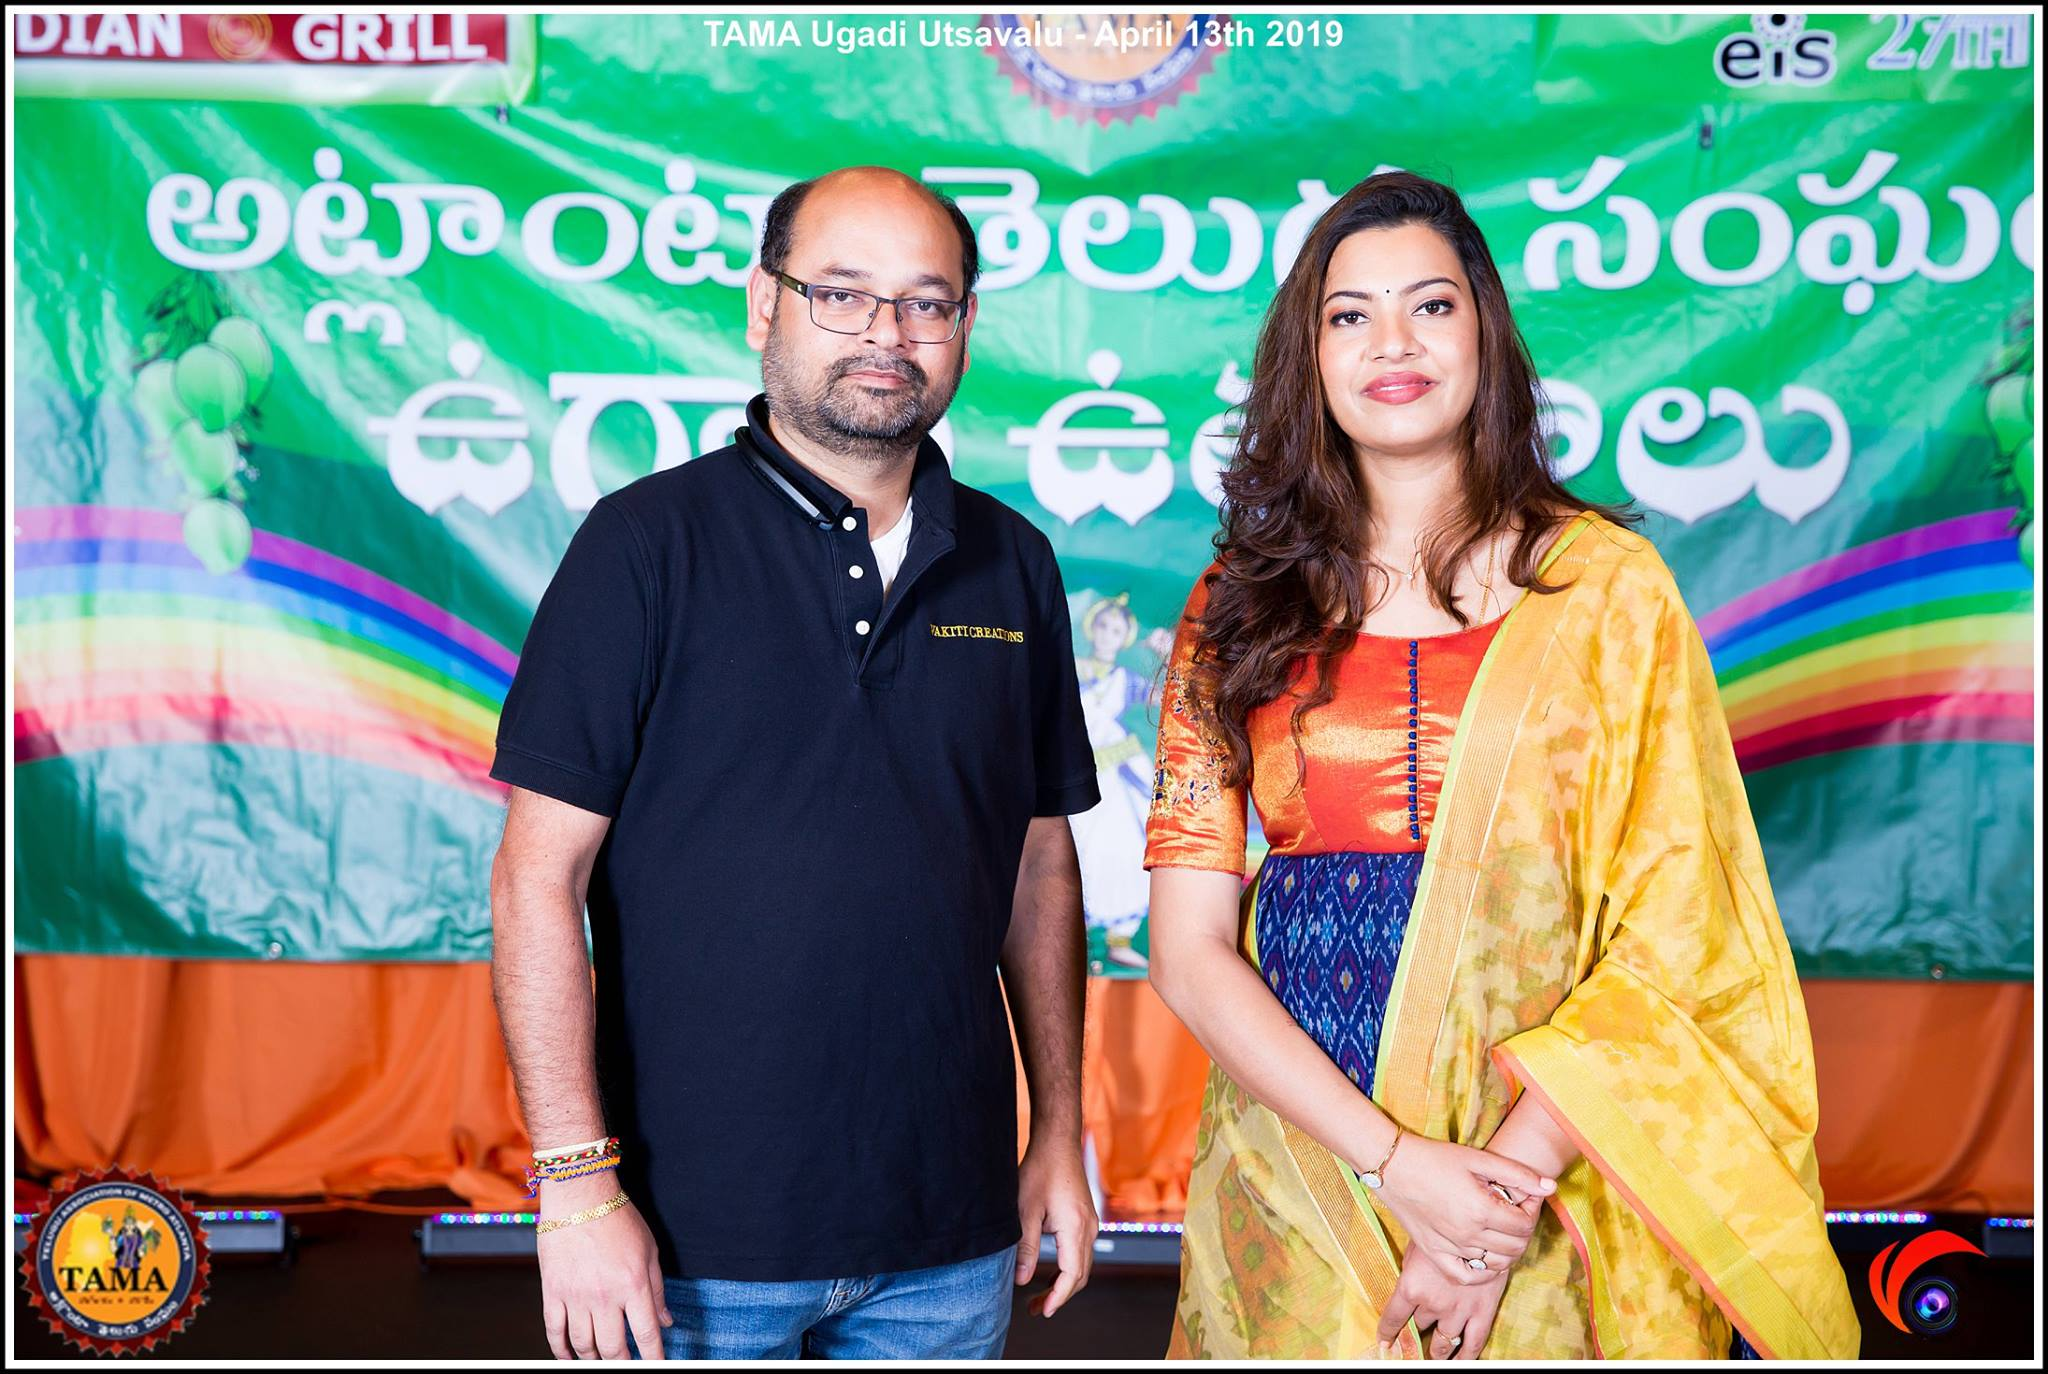 TAMA Ugadi 2019 Meet & Greet with Singer Geetha Madhuri